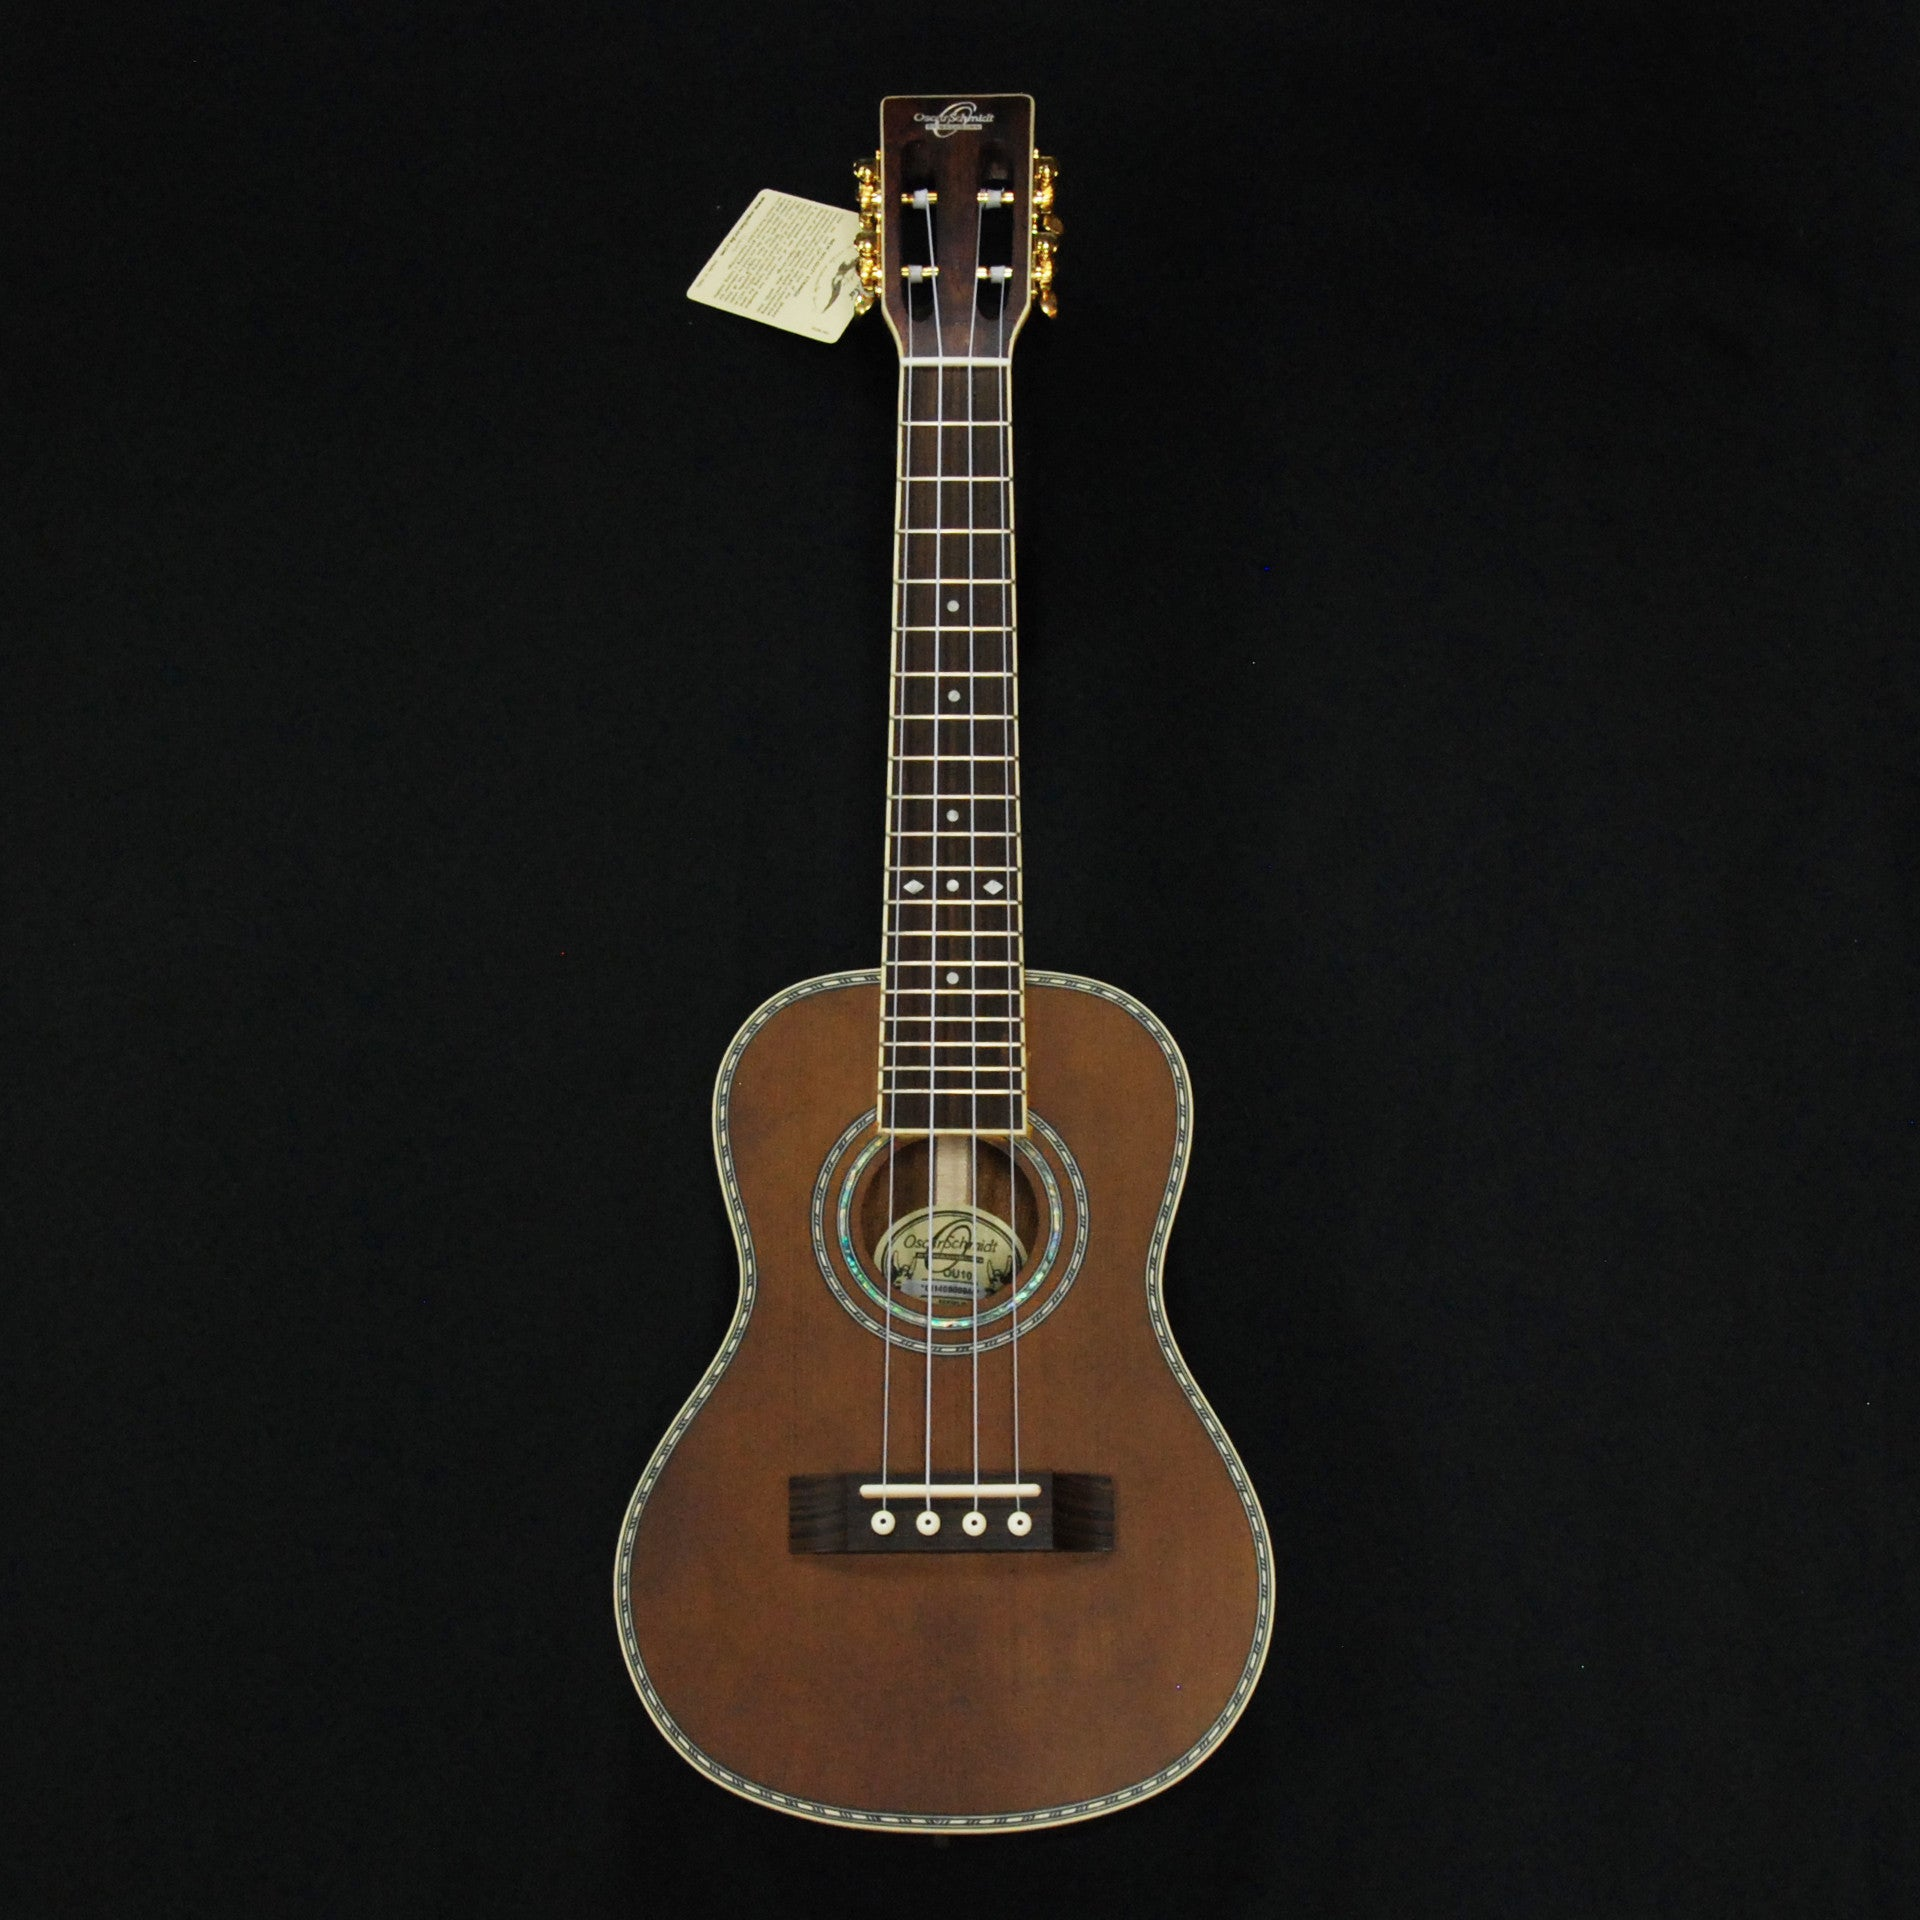 Shop online for Oscar Schmidt OU10 Concert Ukulele Spruce/Trembesi today.  Now available for purchase from Midlothian Music of Orland Park, Illinois, USA